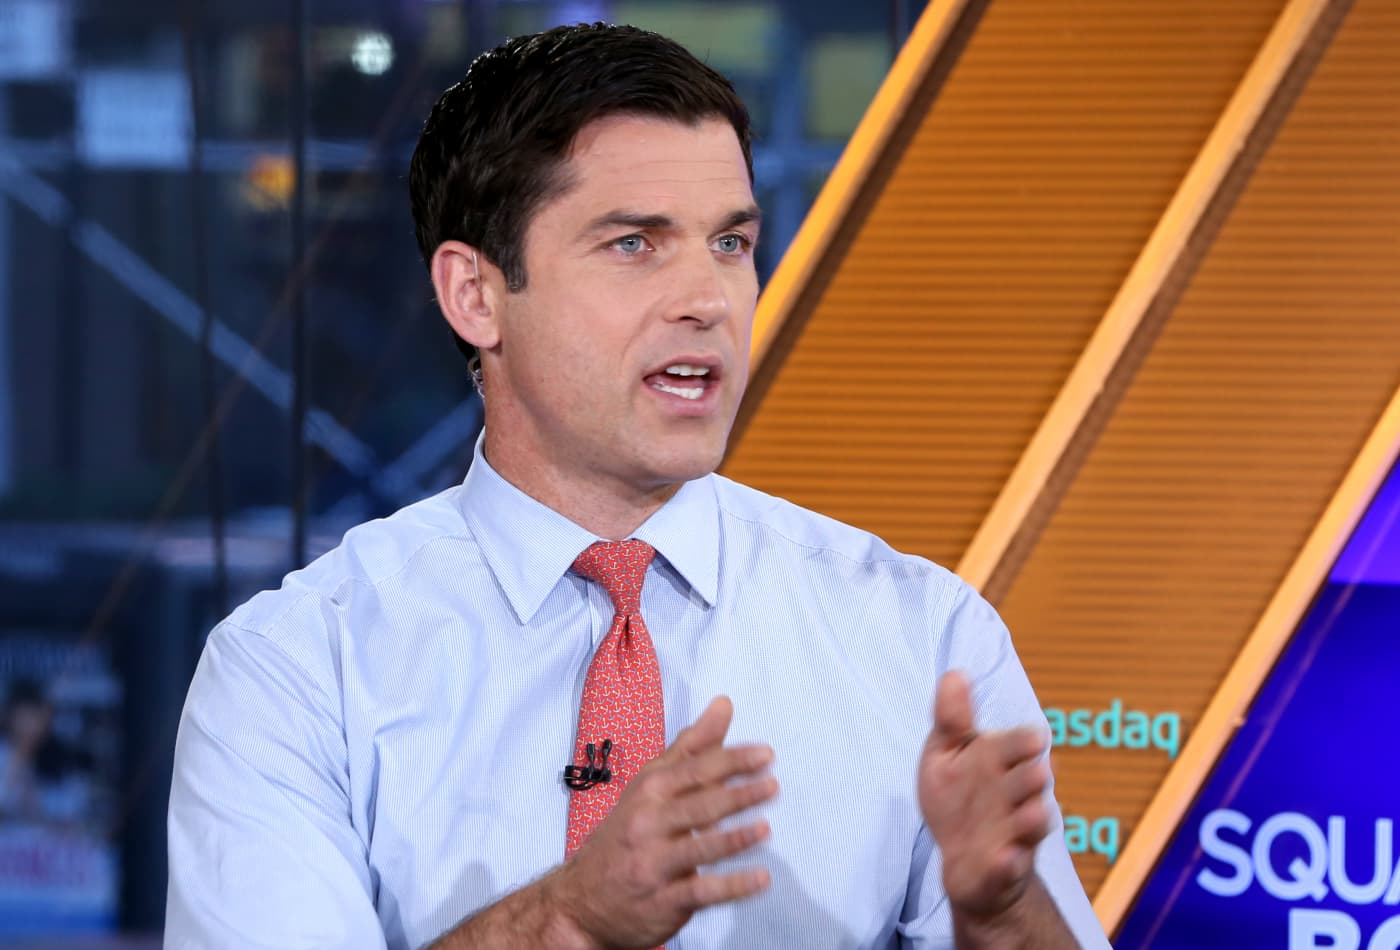 15 days of 102 fever, a cracked tooth from chattering — ex-NYSE chief shares his Covid ordeal